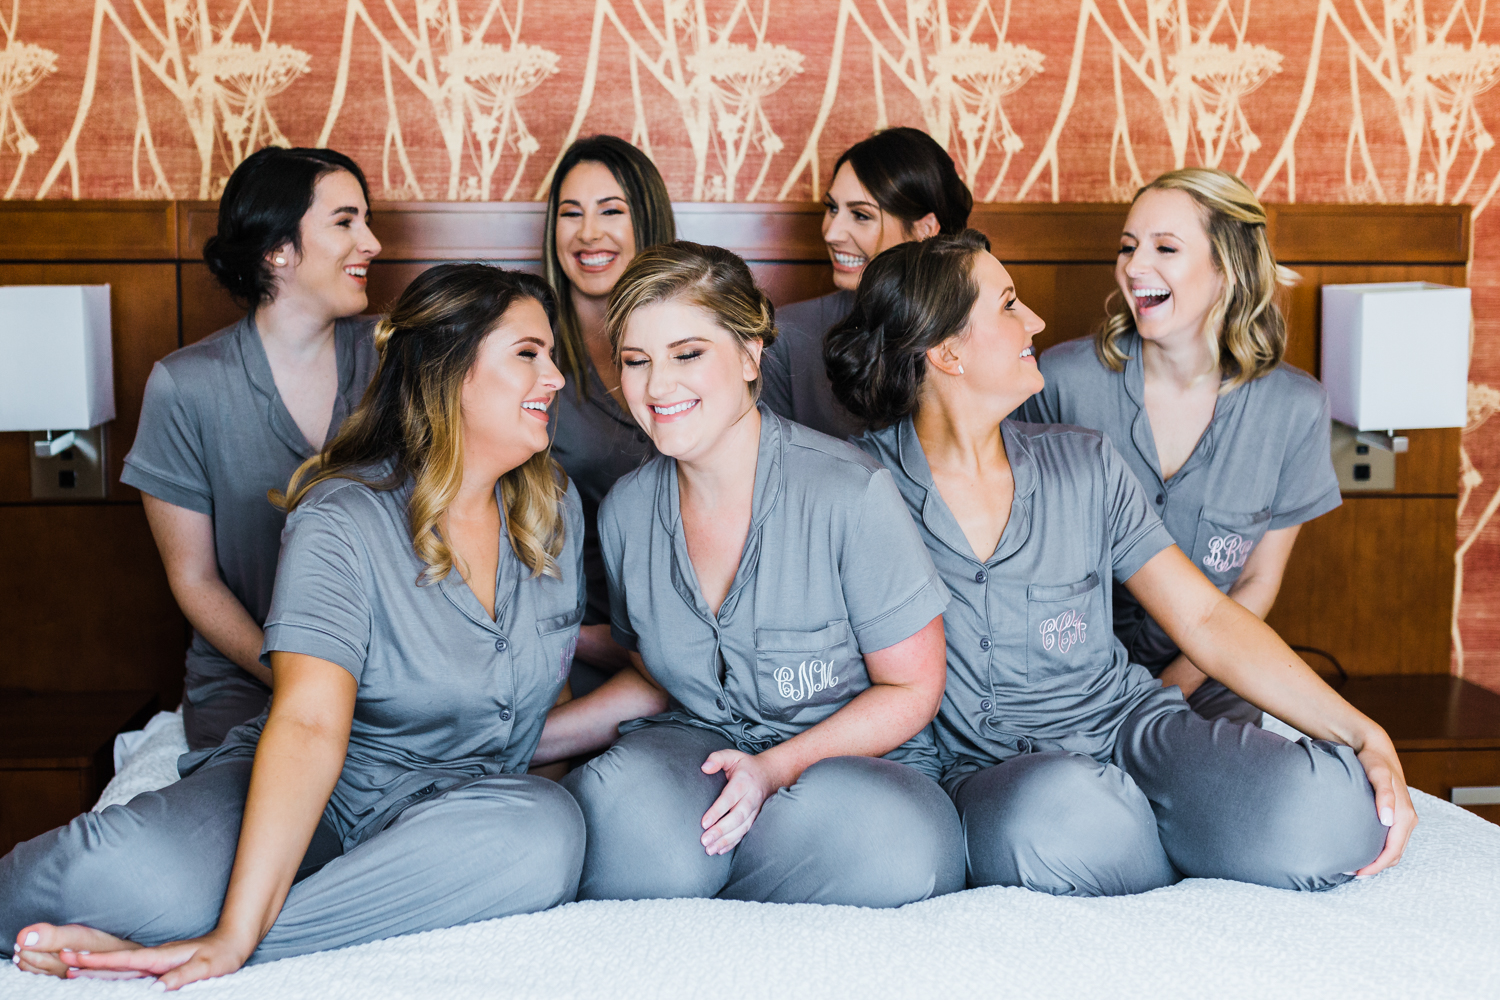 bride laughing with her bridesmaids on a bed in a hotel - Maryland wedding venues in downtown Frederick